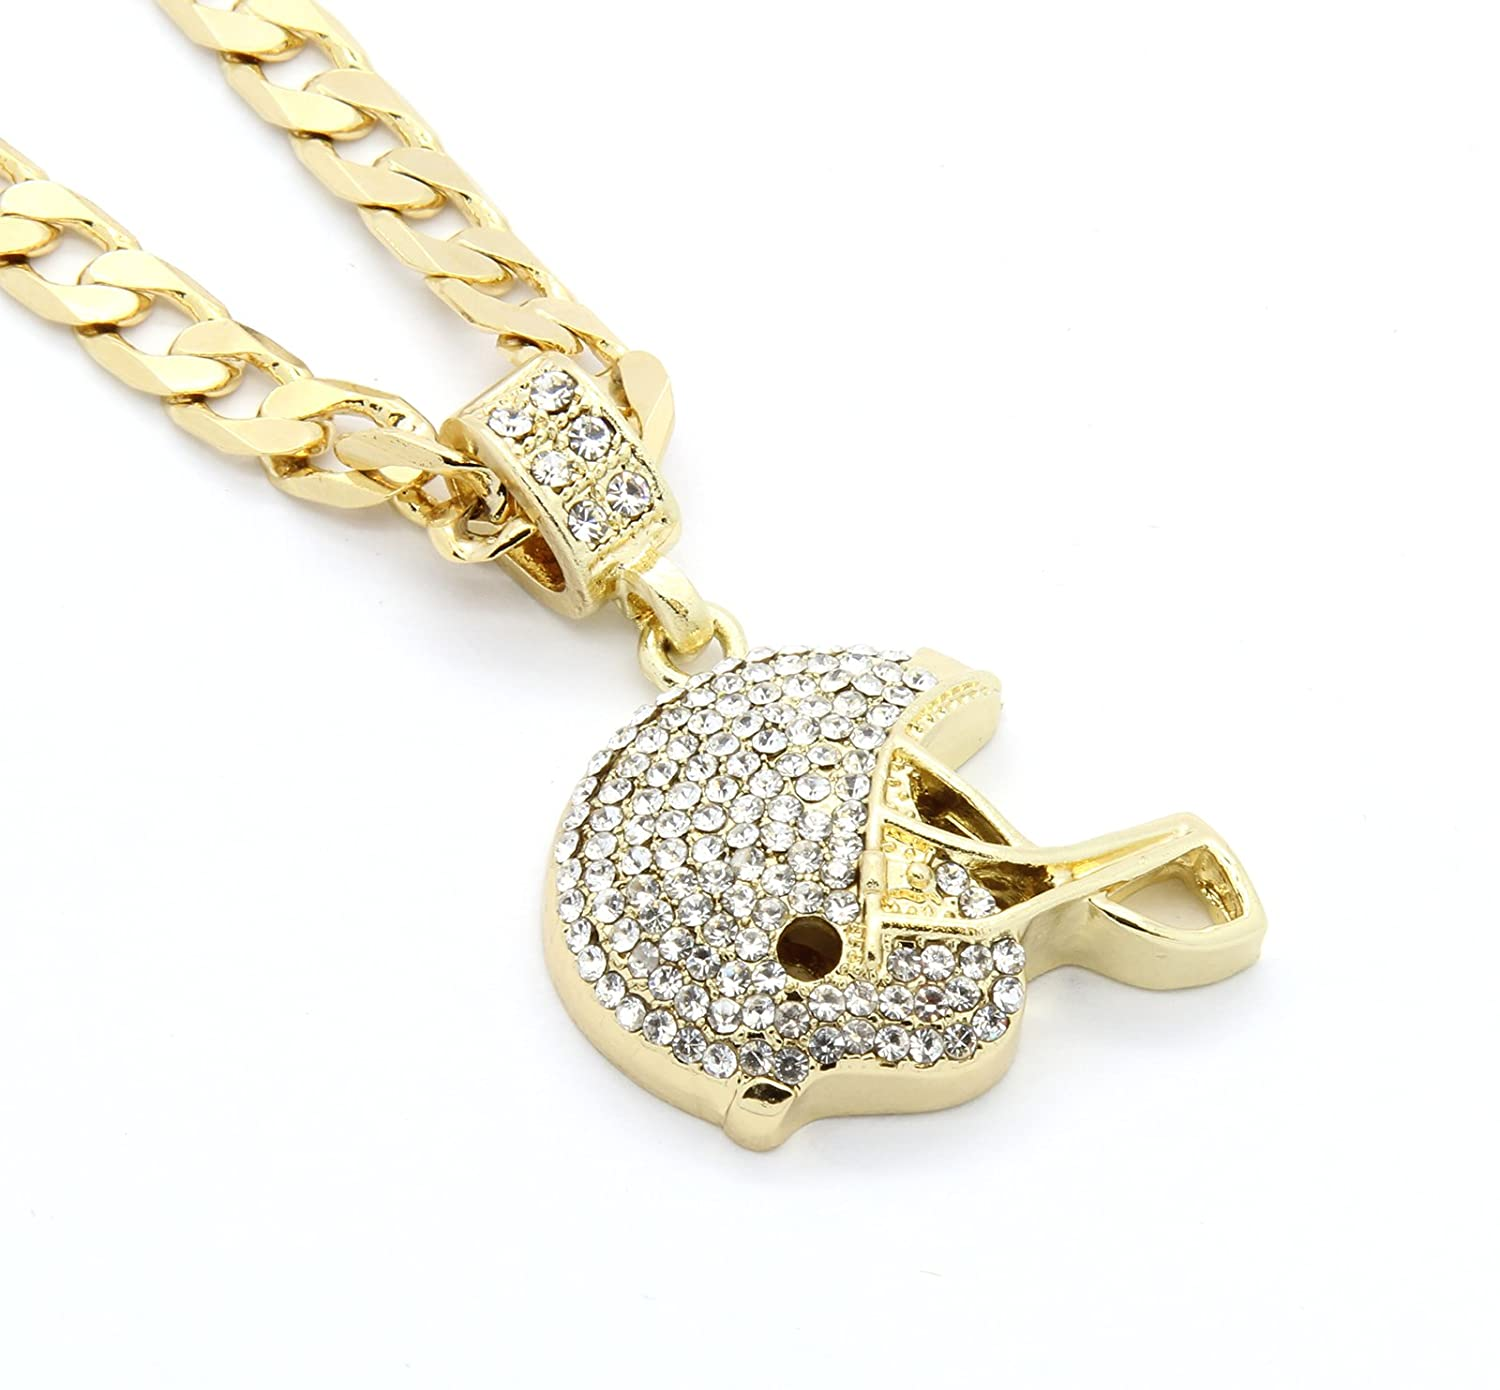 amazon tennis out com chains row mens hop hip gold diamond simulated tone fxwqjl iced necklace lady chain dp